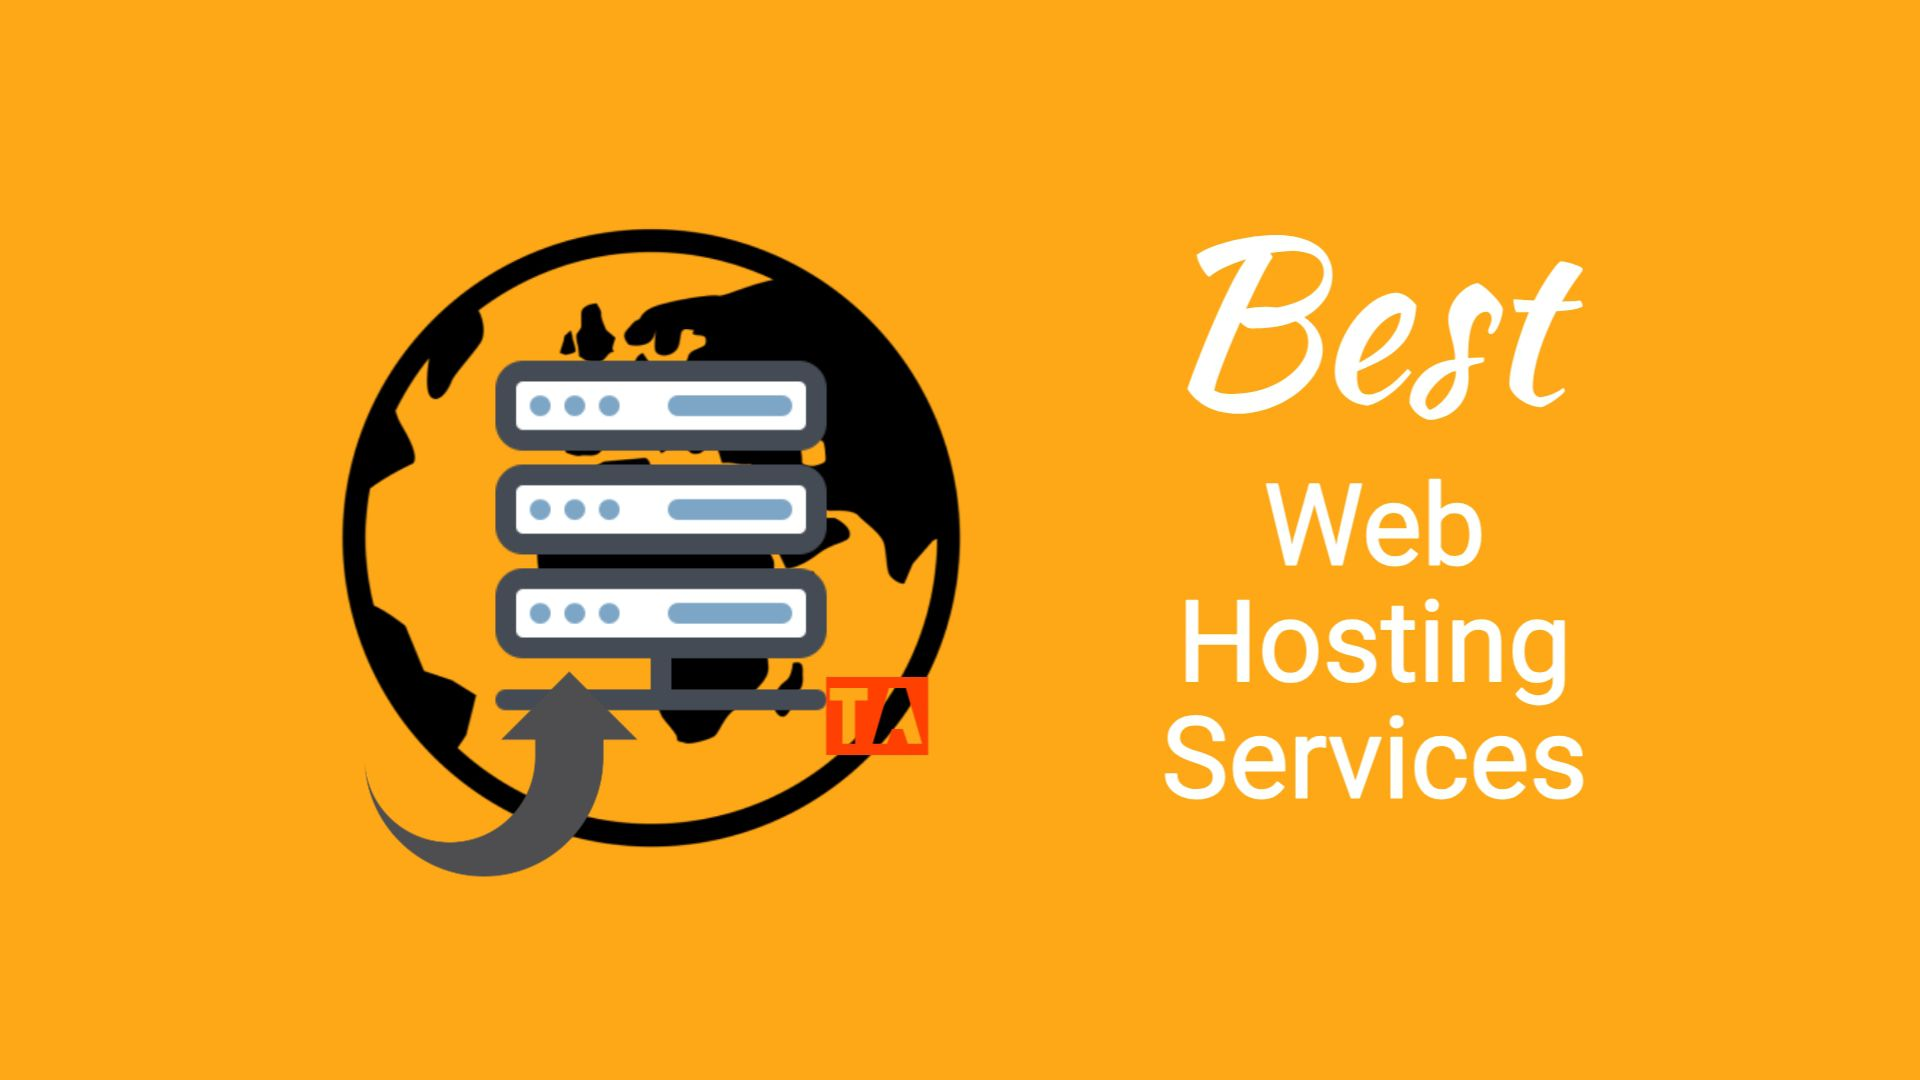 Best Web Hosting Services 2020